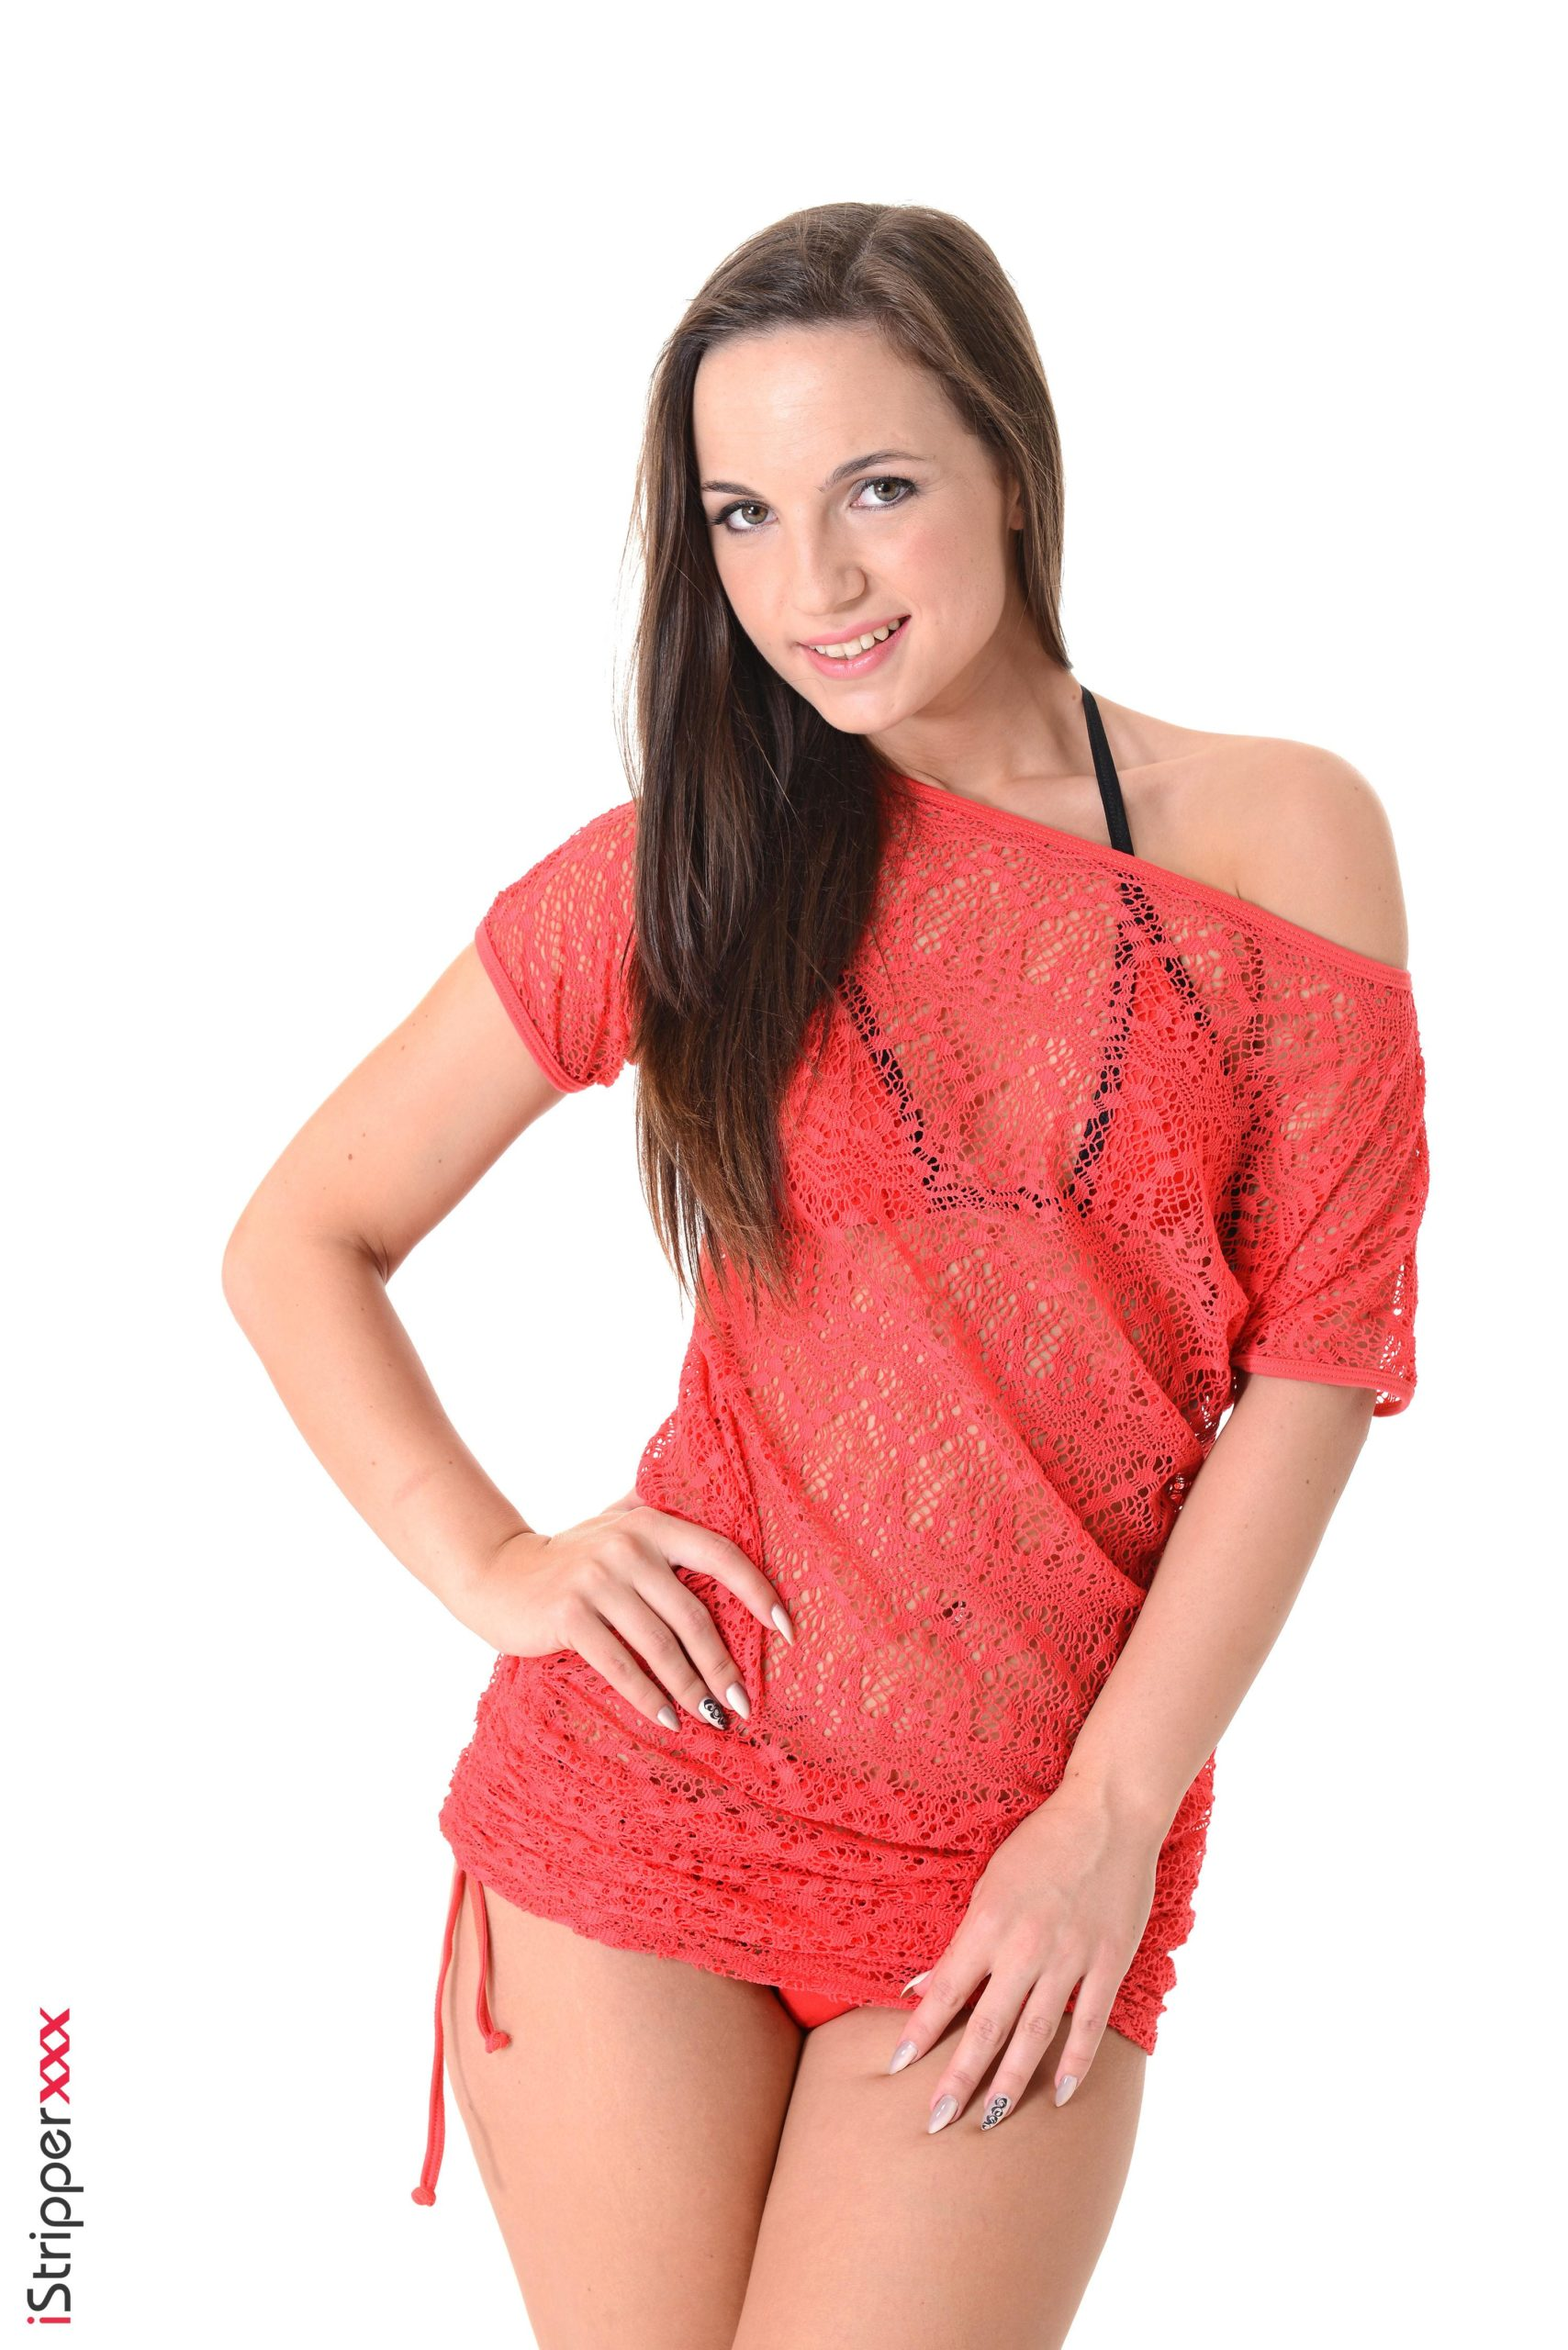 Kristy Black is the girl of the day for June 30, 2021